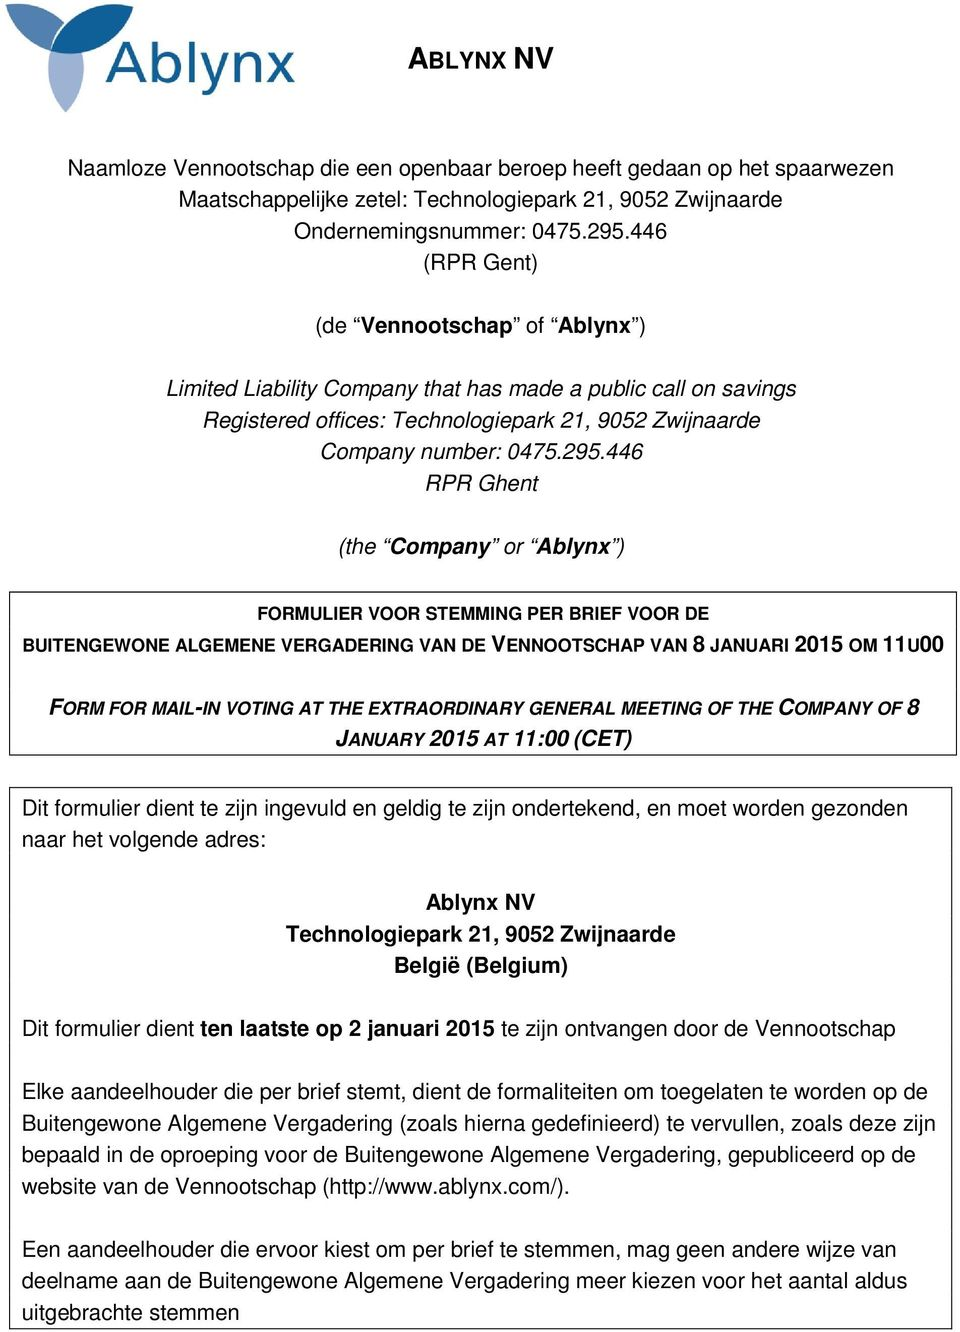 446 RPR Ghent (the Company or Ablynx ) FORMULIER VOOR STEMMING PER BRIEF VOOR DE BUITENGEWONE ALGEMENE VERGADERING VAN DE VENNOOTSCHAP VAN 8 JANUARI 2015 OM 11U00 FORM FOR MAIL-IN VOTING AT THE